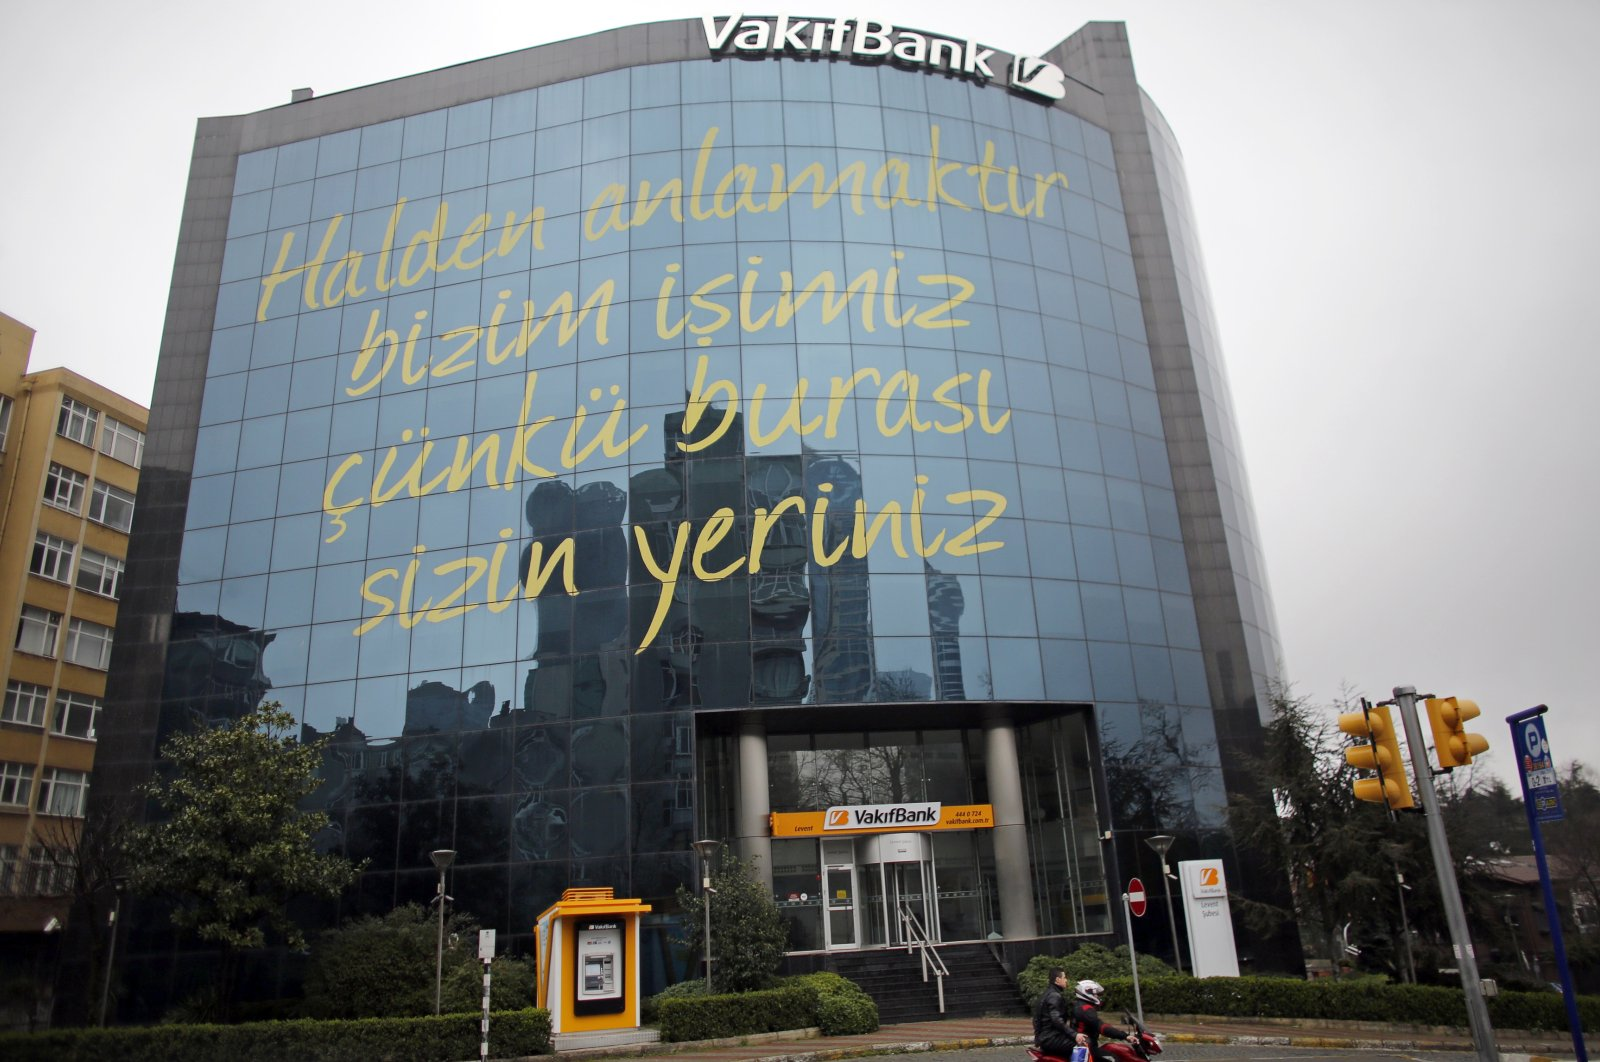 The headquarters of state-run bank Vakıfbank in Istanbul, Turkey, March 15, 2015. (Reuters Photo)